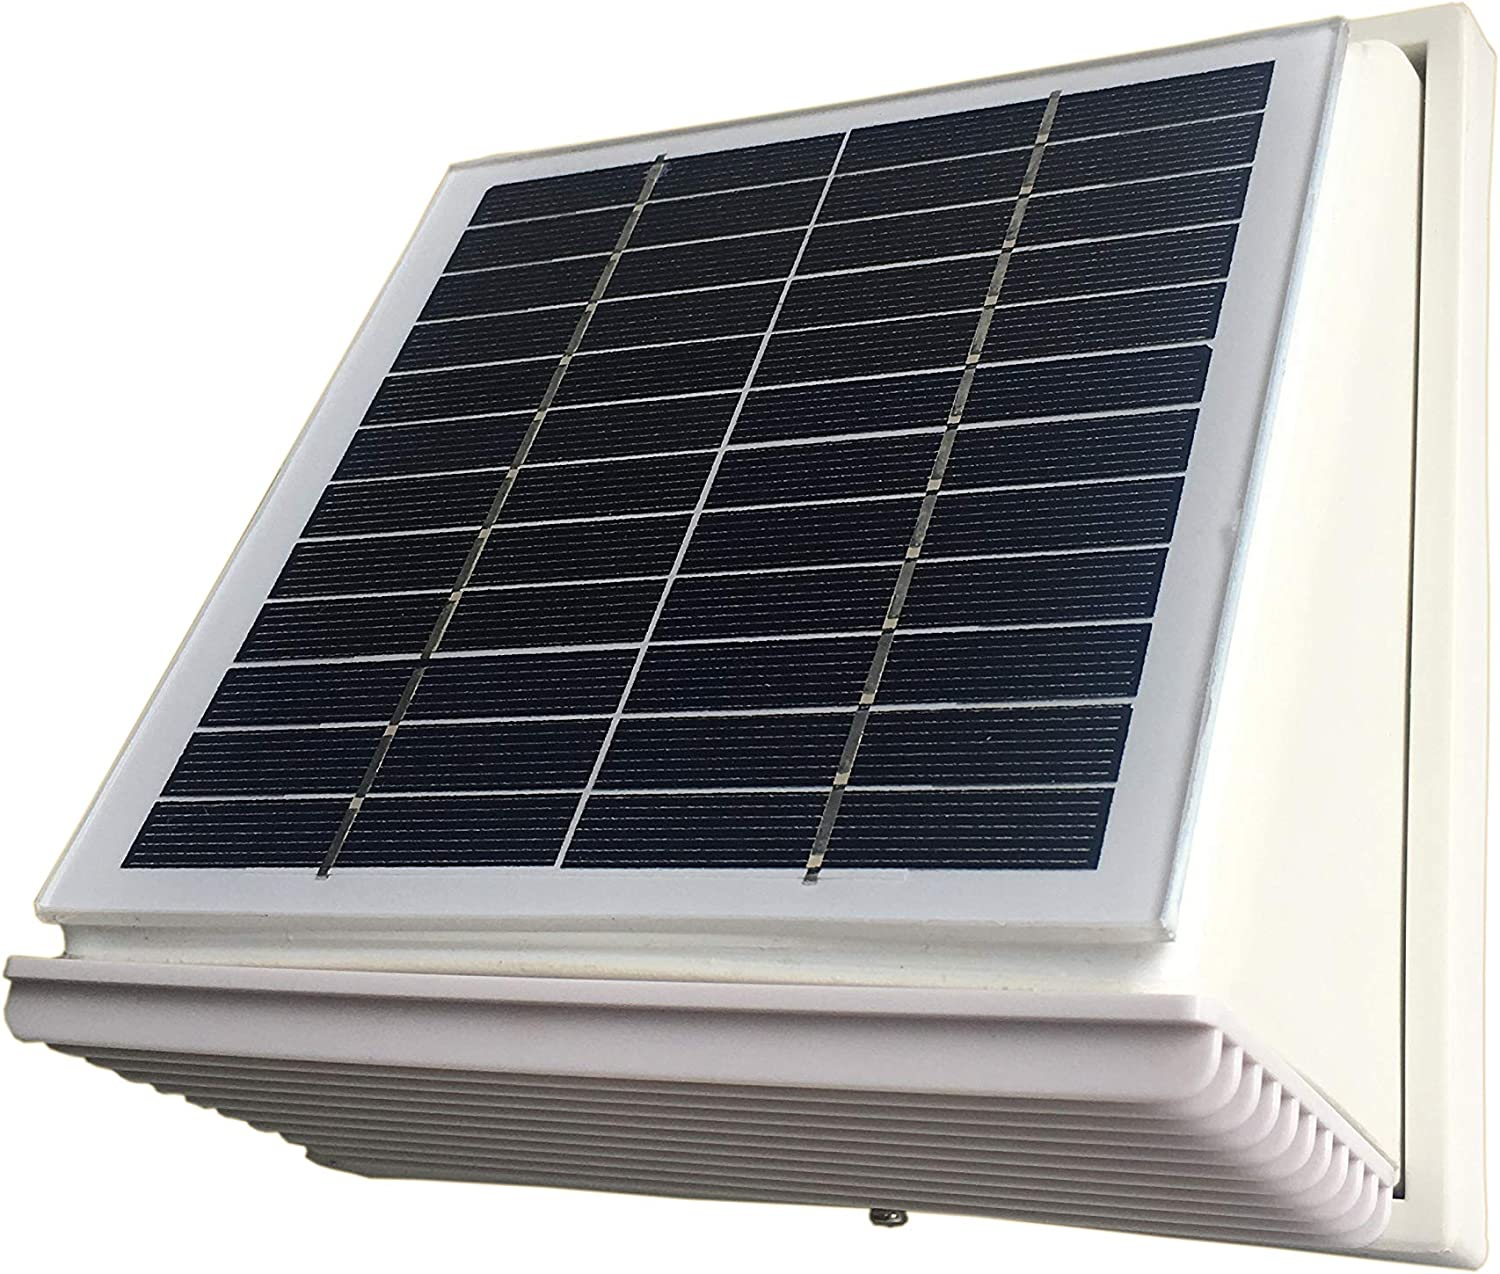 Plastic Solar Wall Fan Exhaust Vent Airduct Φ120mm Extractor Ventilator for shed kitchens bathrooms outdoor storage